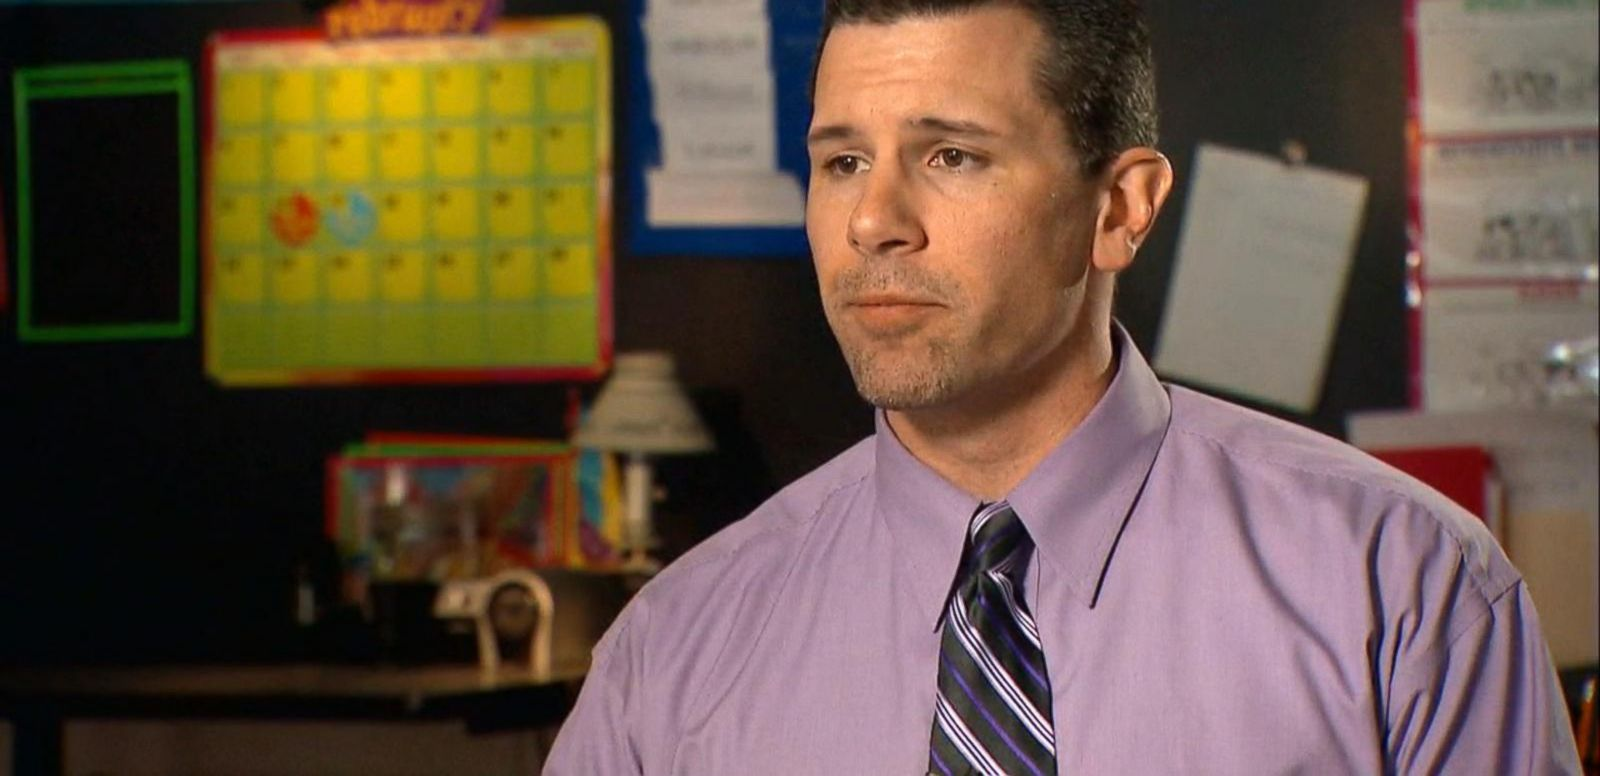 VIDEO: Boston-Area Principal Fights Back Against Cyberbullying